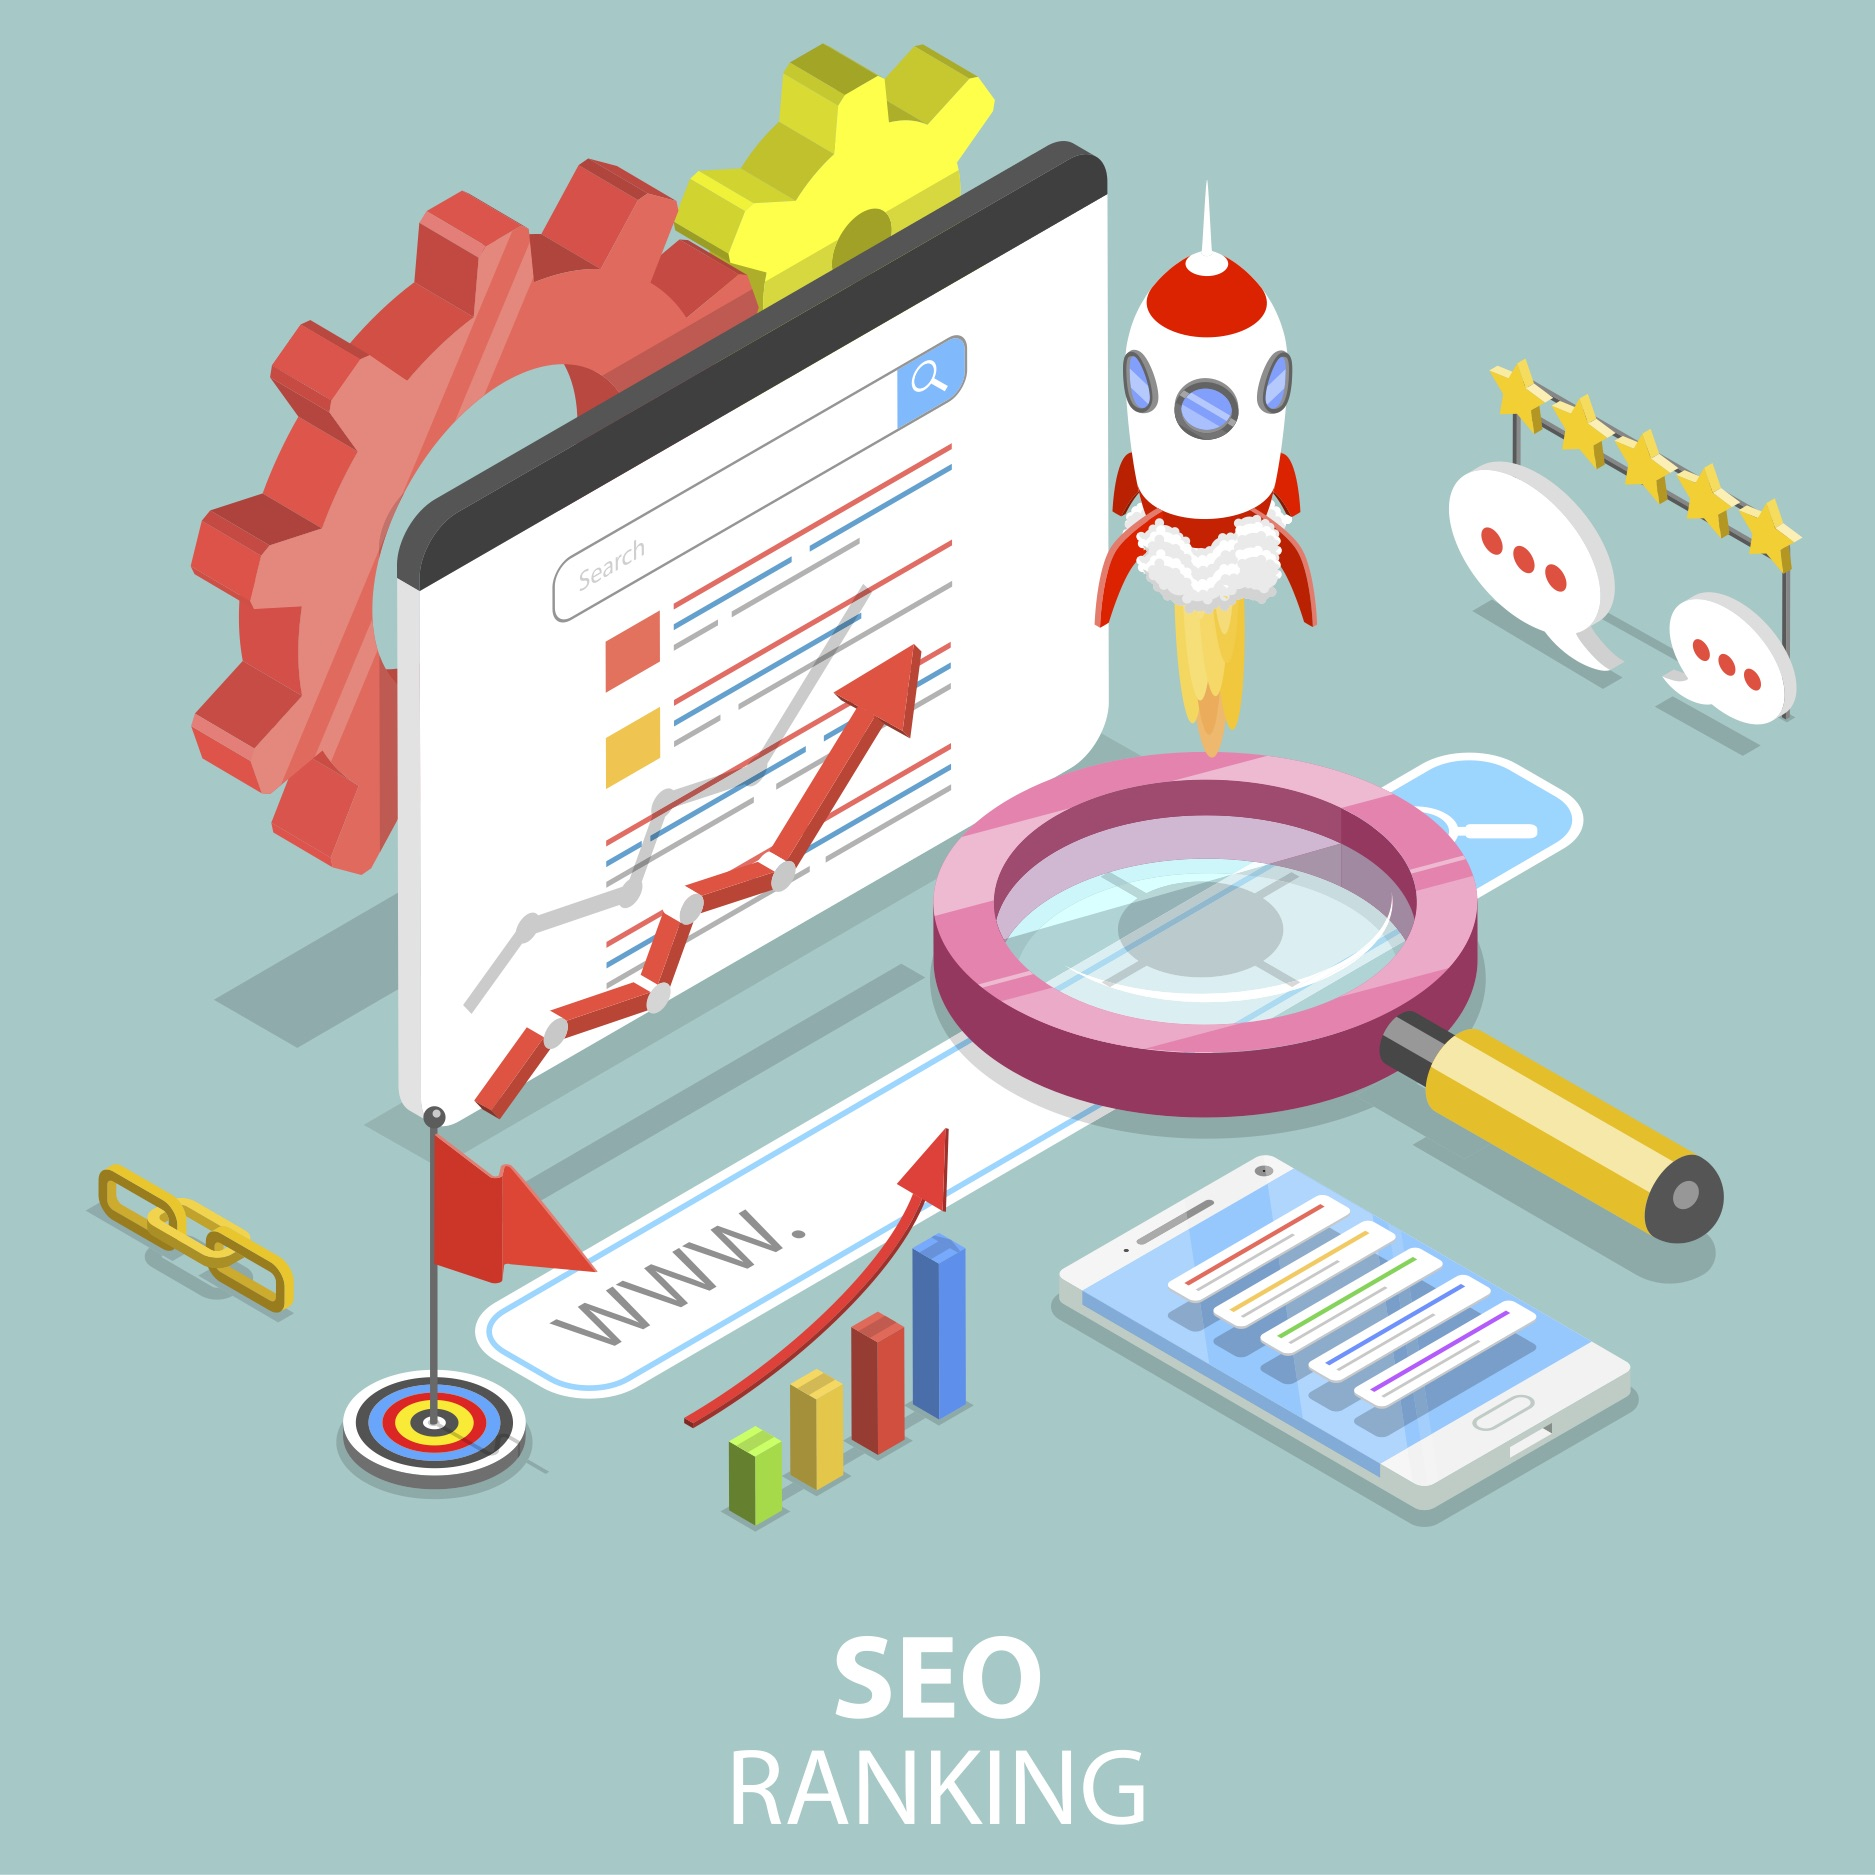 SEO graphic with several graphs